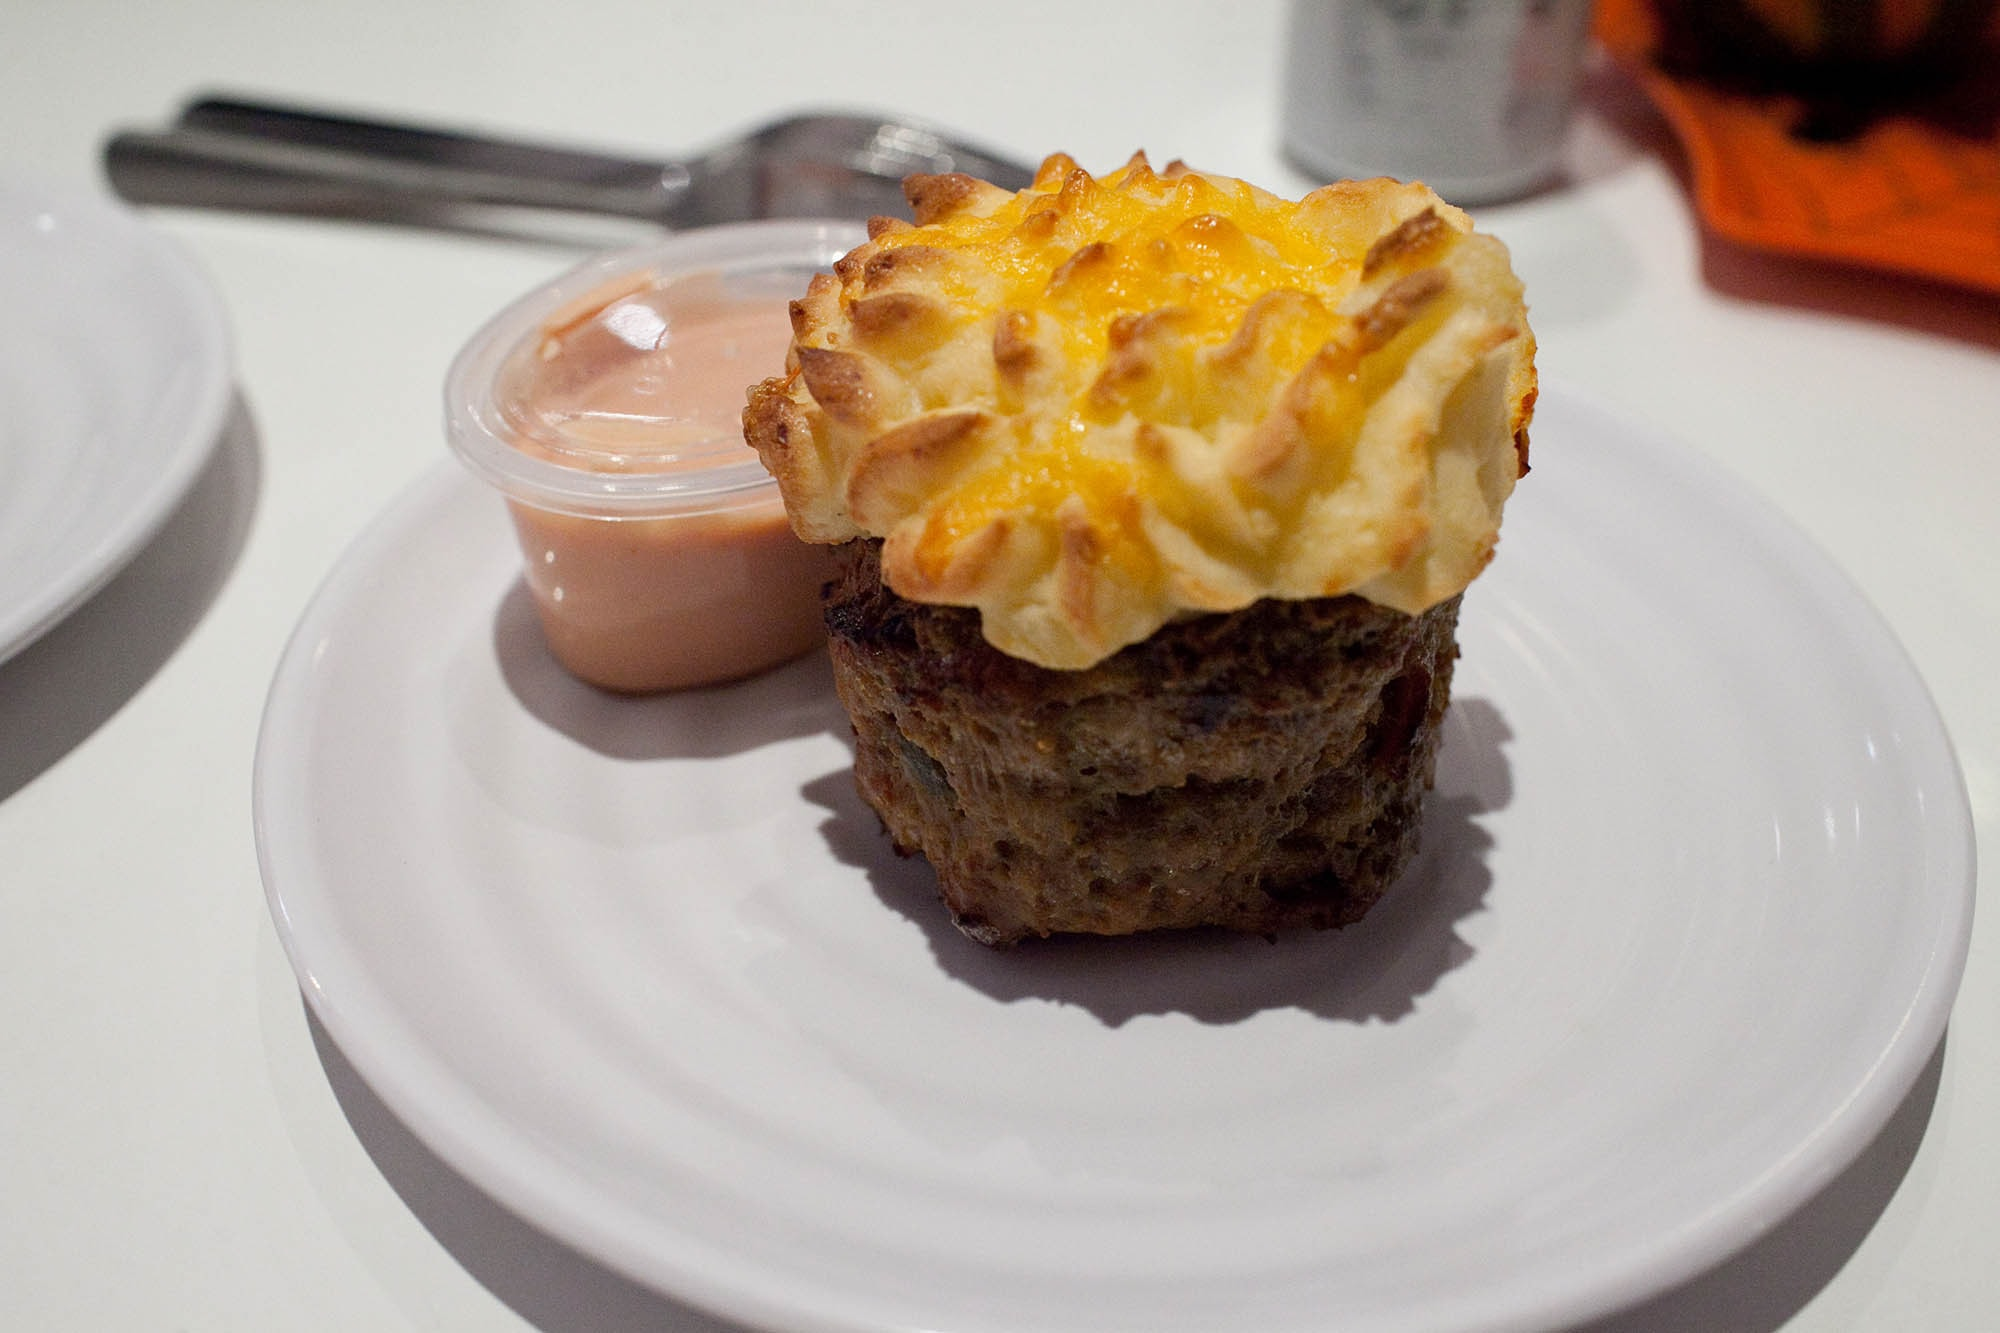 The Meatloaf Bakery in Chicago - No Buns About It Meatloaf Cupcake - beef with bacon, cheddar, onions, mustard, ketchup, and pickles topped with cheesy taters and served with special sauce.